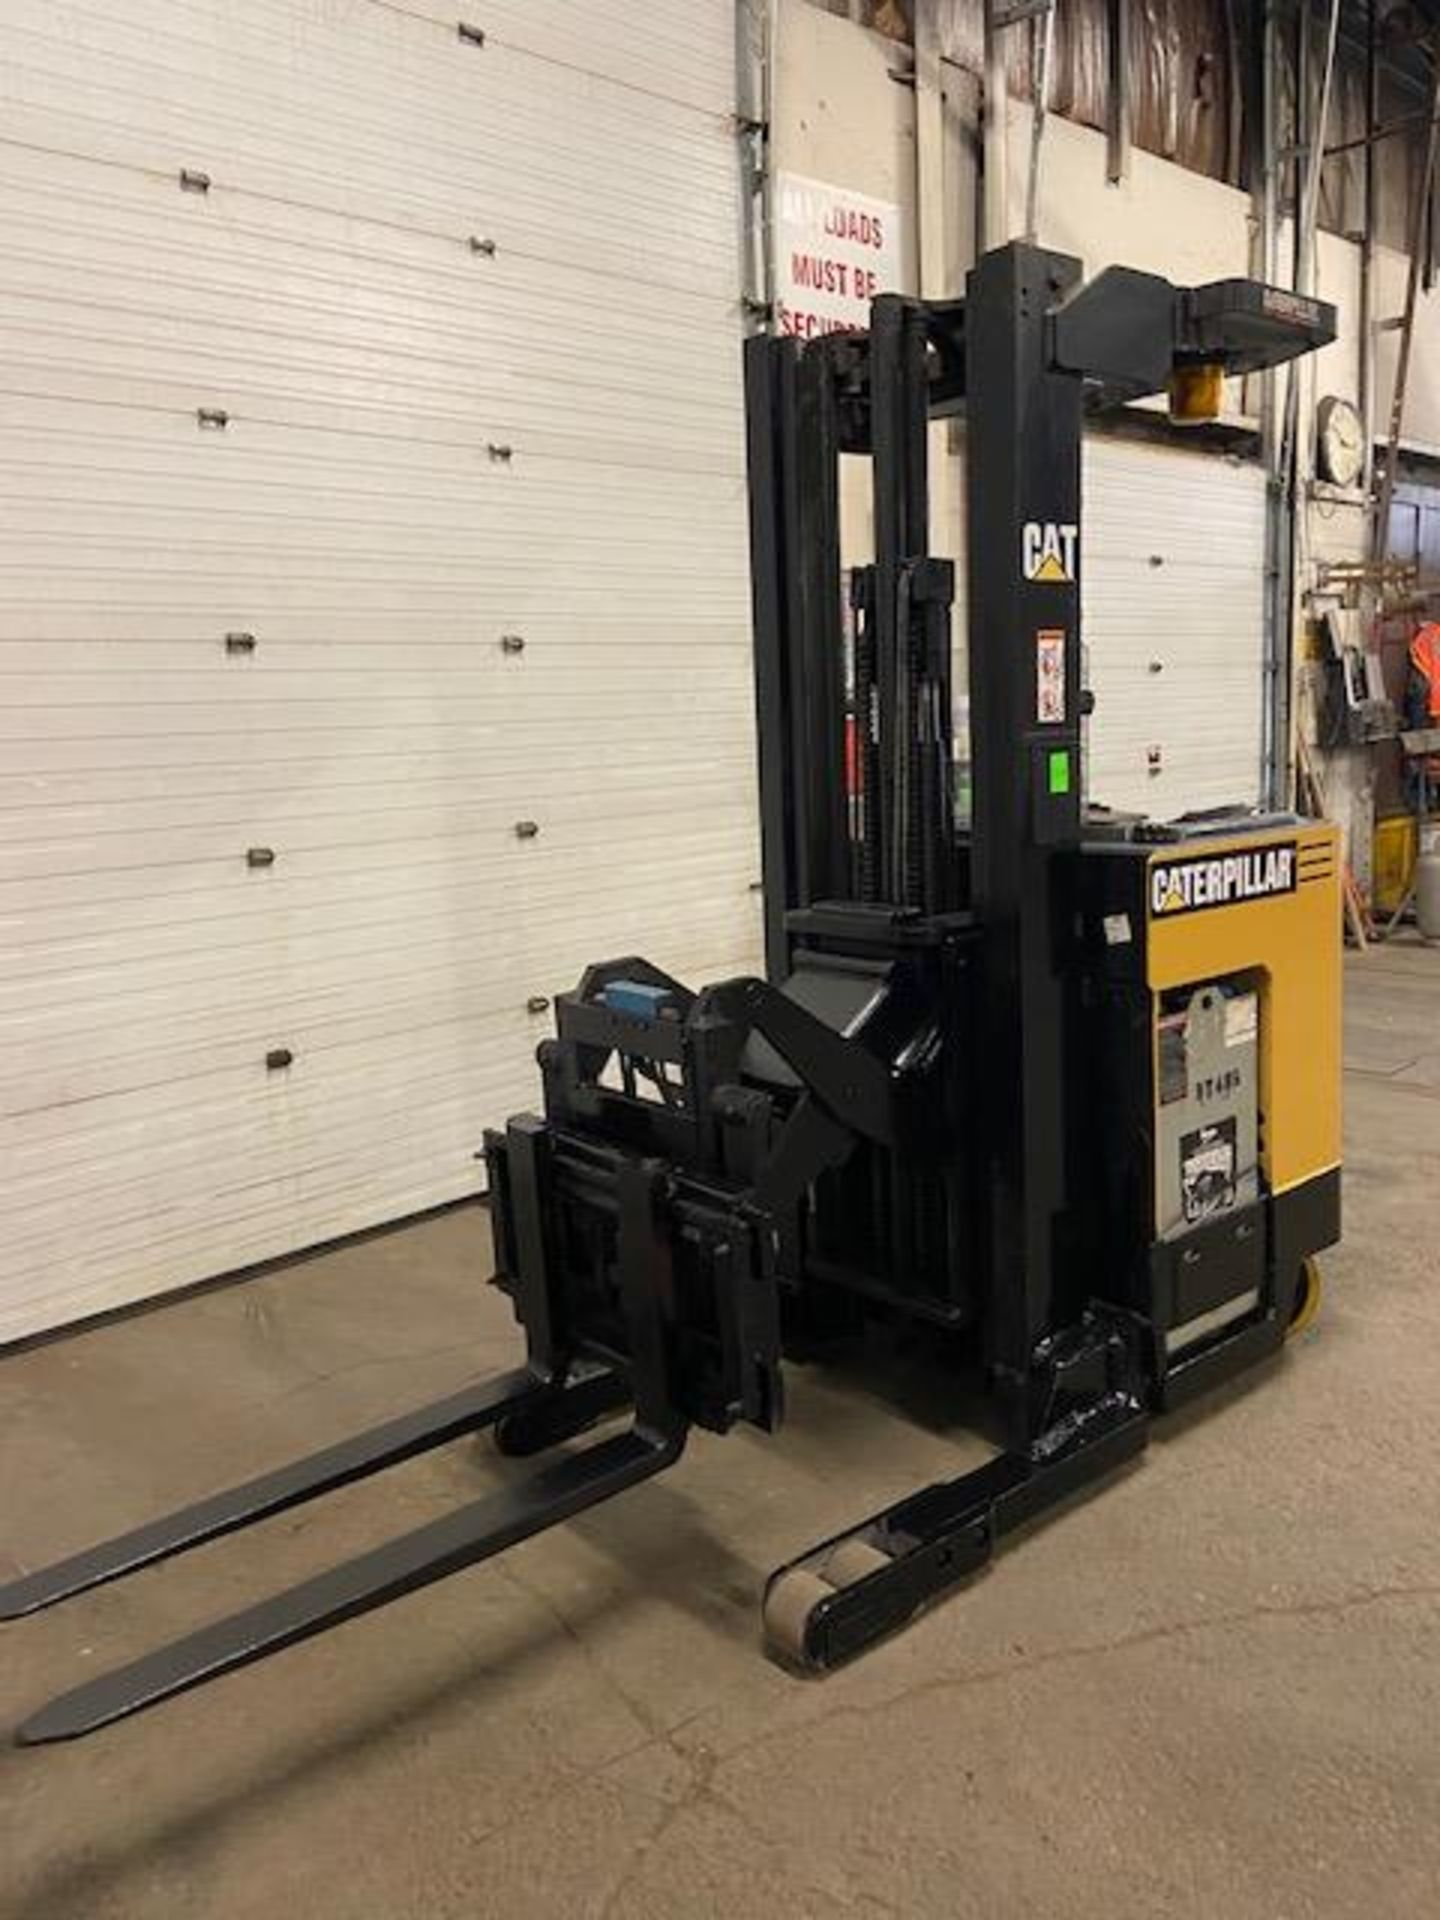 FREE CUSTOMS - CAT Reach Truck Pallet Lifter REACH TRUCK electric 4000lbs with sideshift - Image 2 of 3